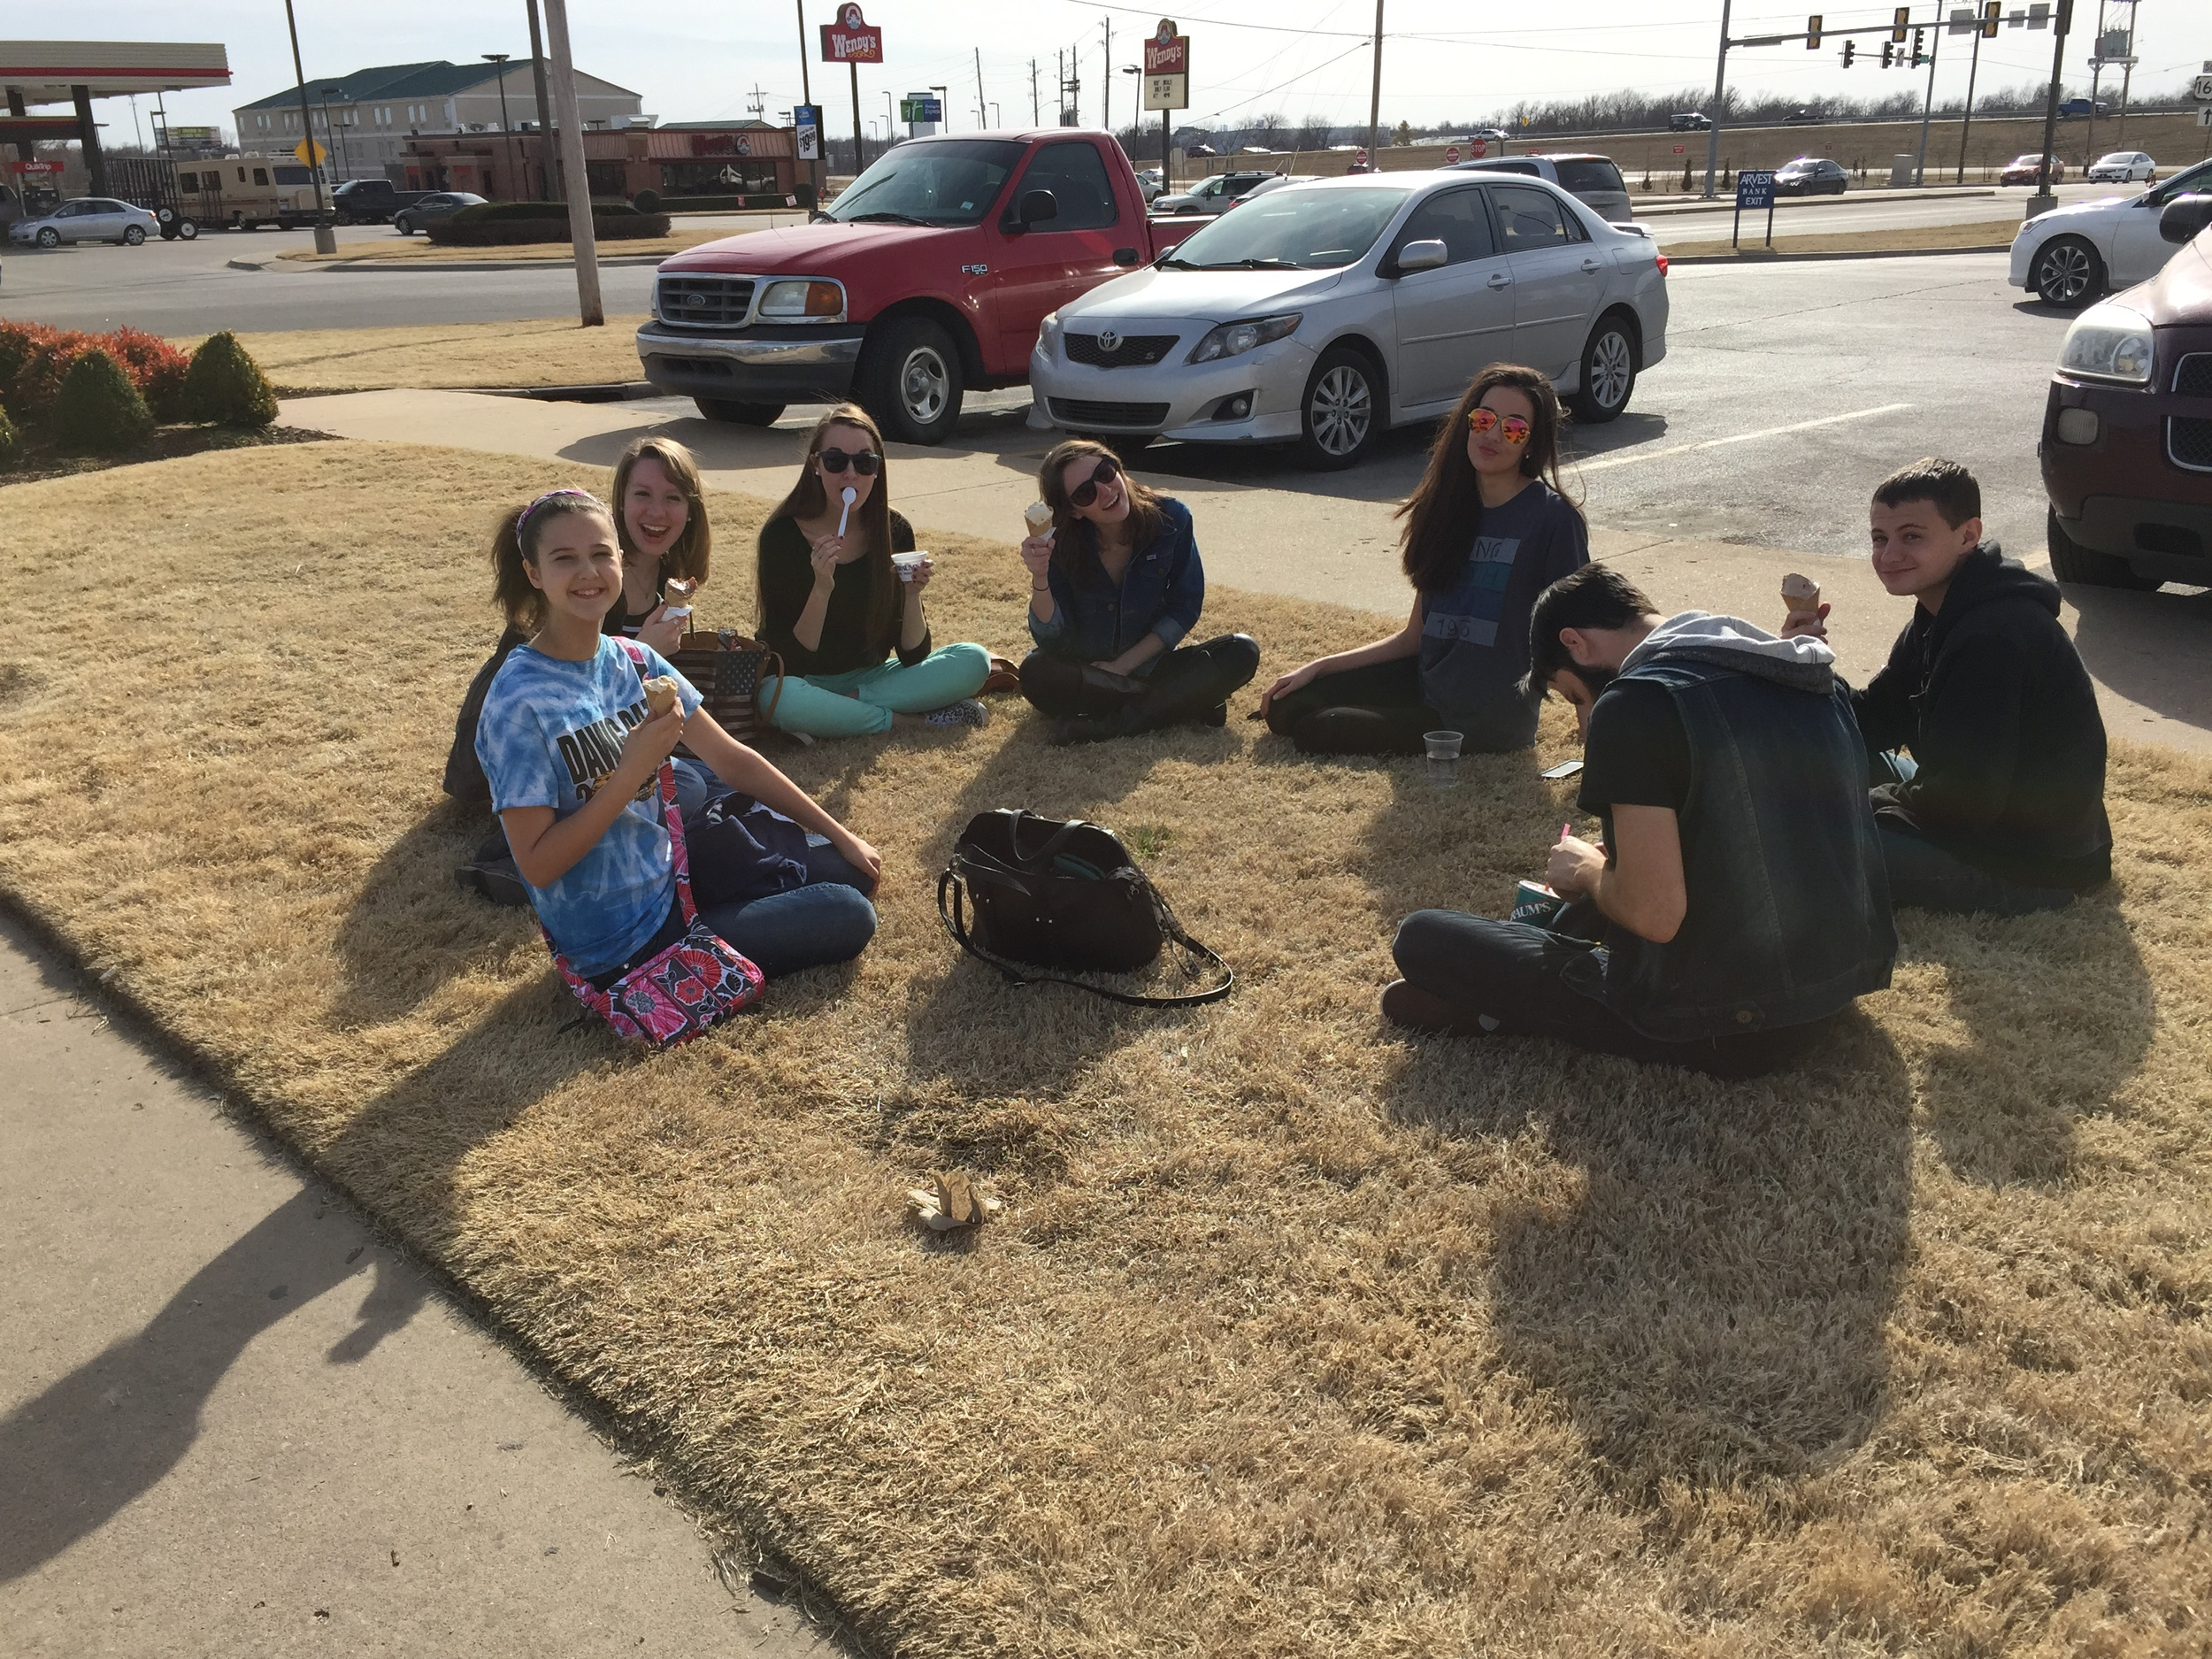 Our team from today eating ice cream outside!